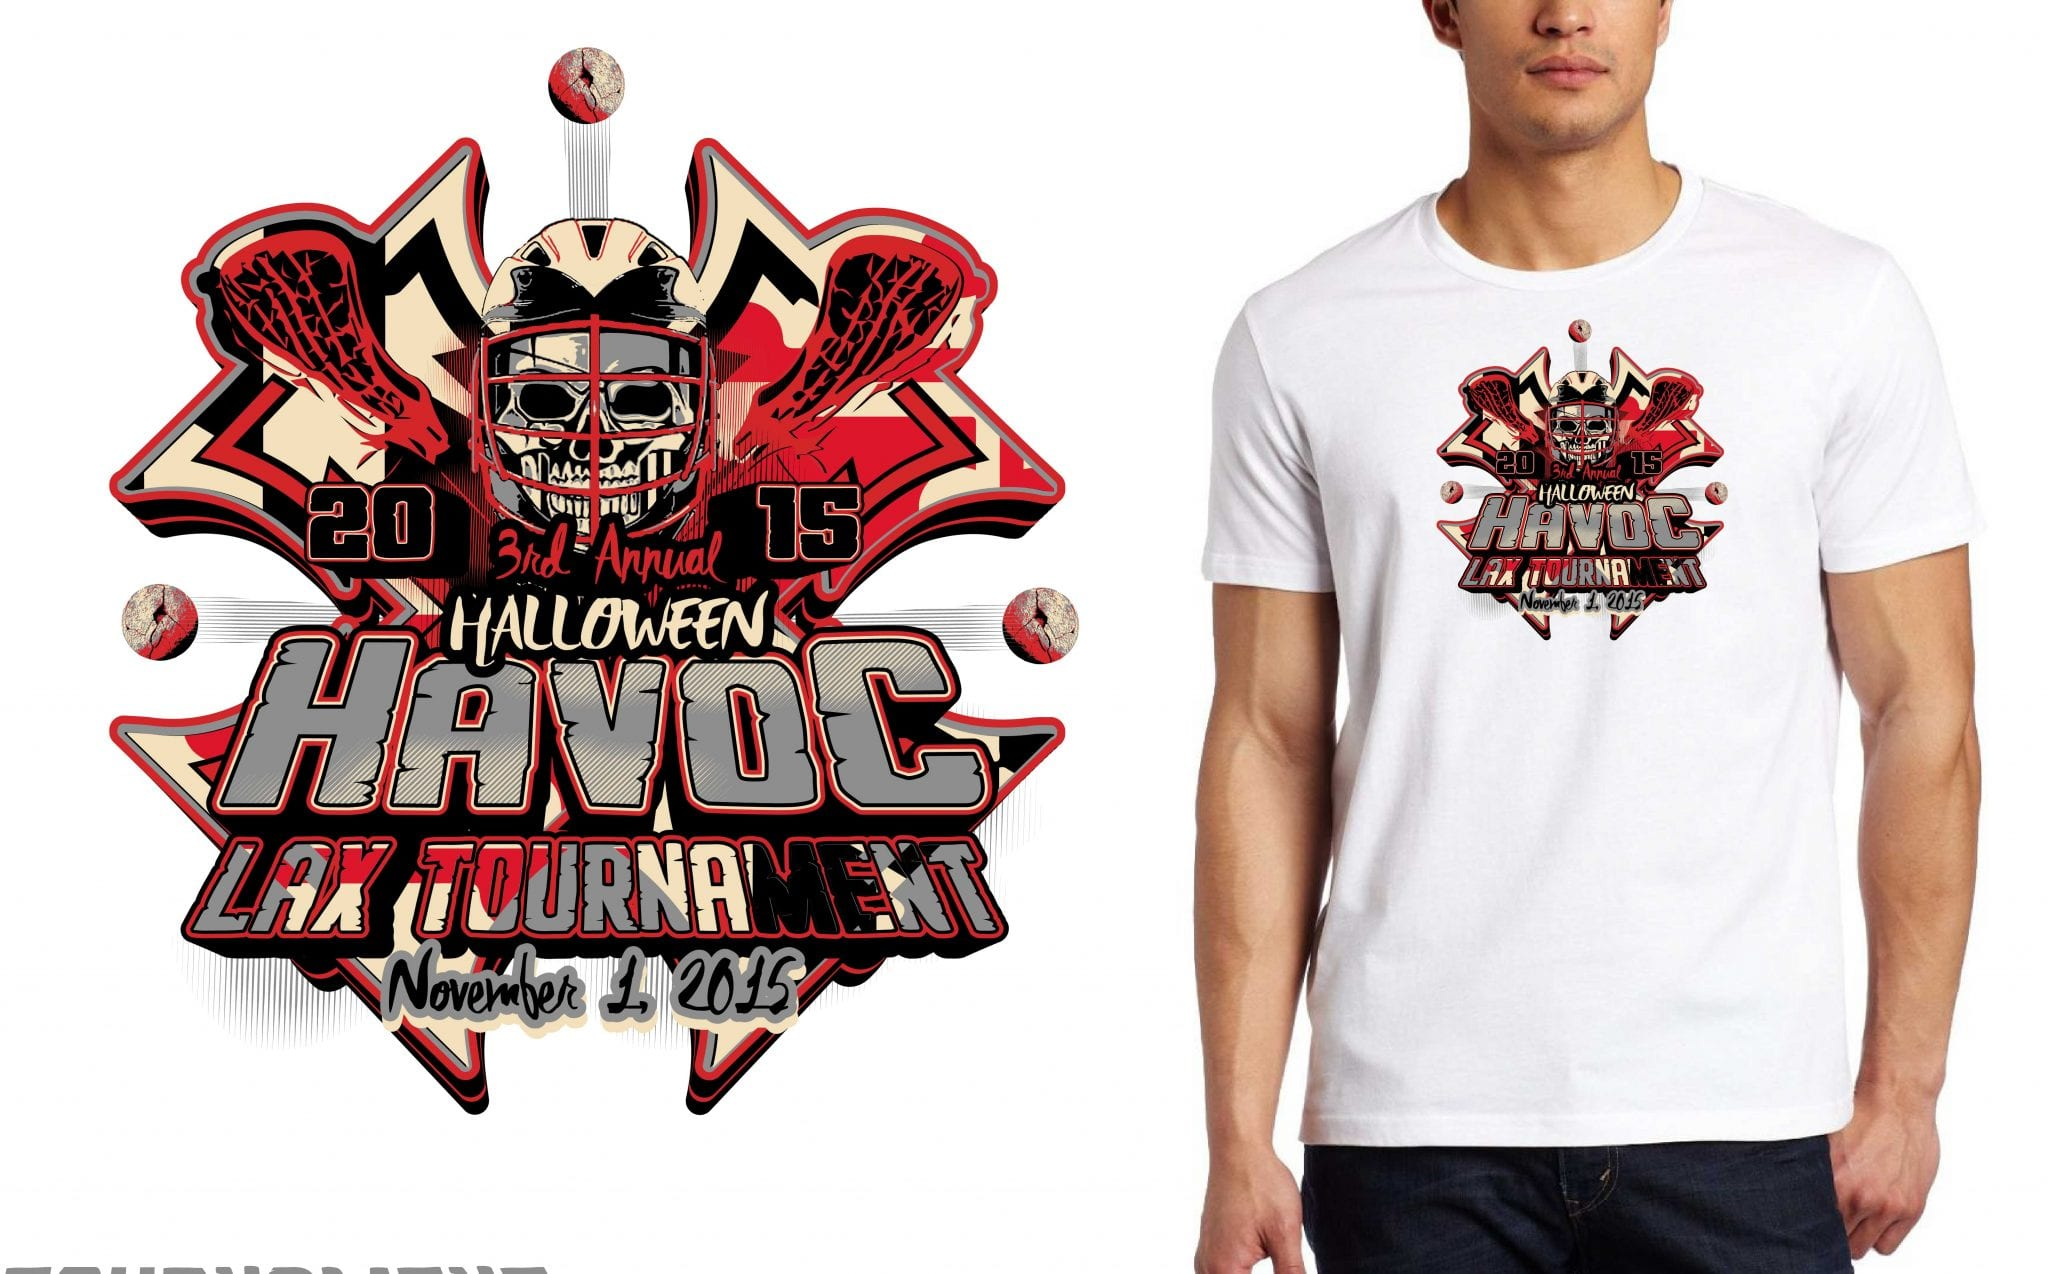 2015 MD Halloween Havoc Tournament of Champions Qualifie tshirt hockey logo design